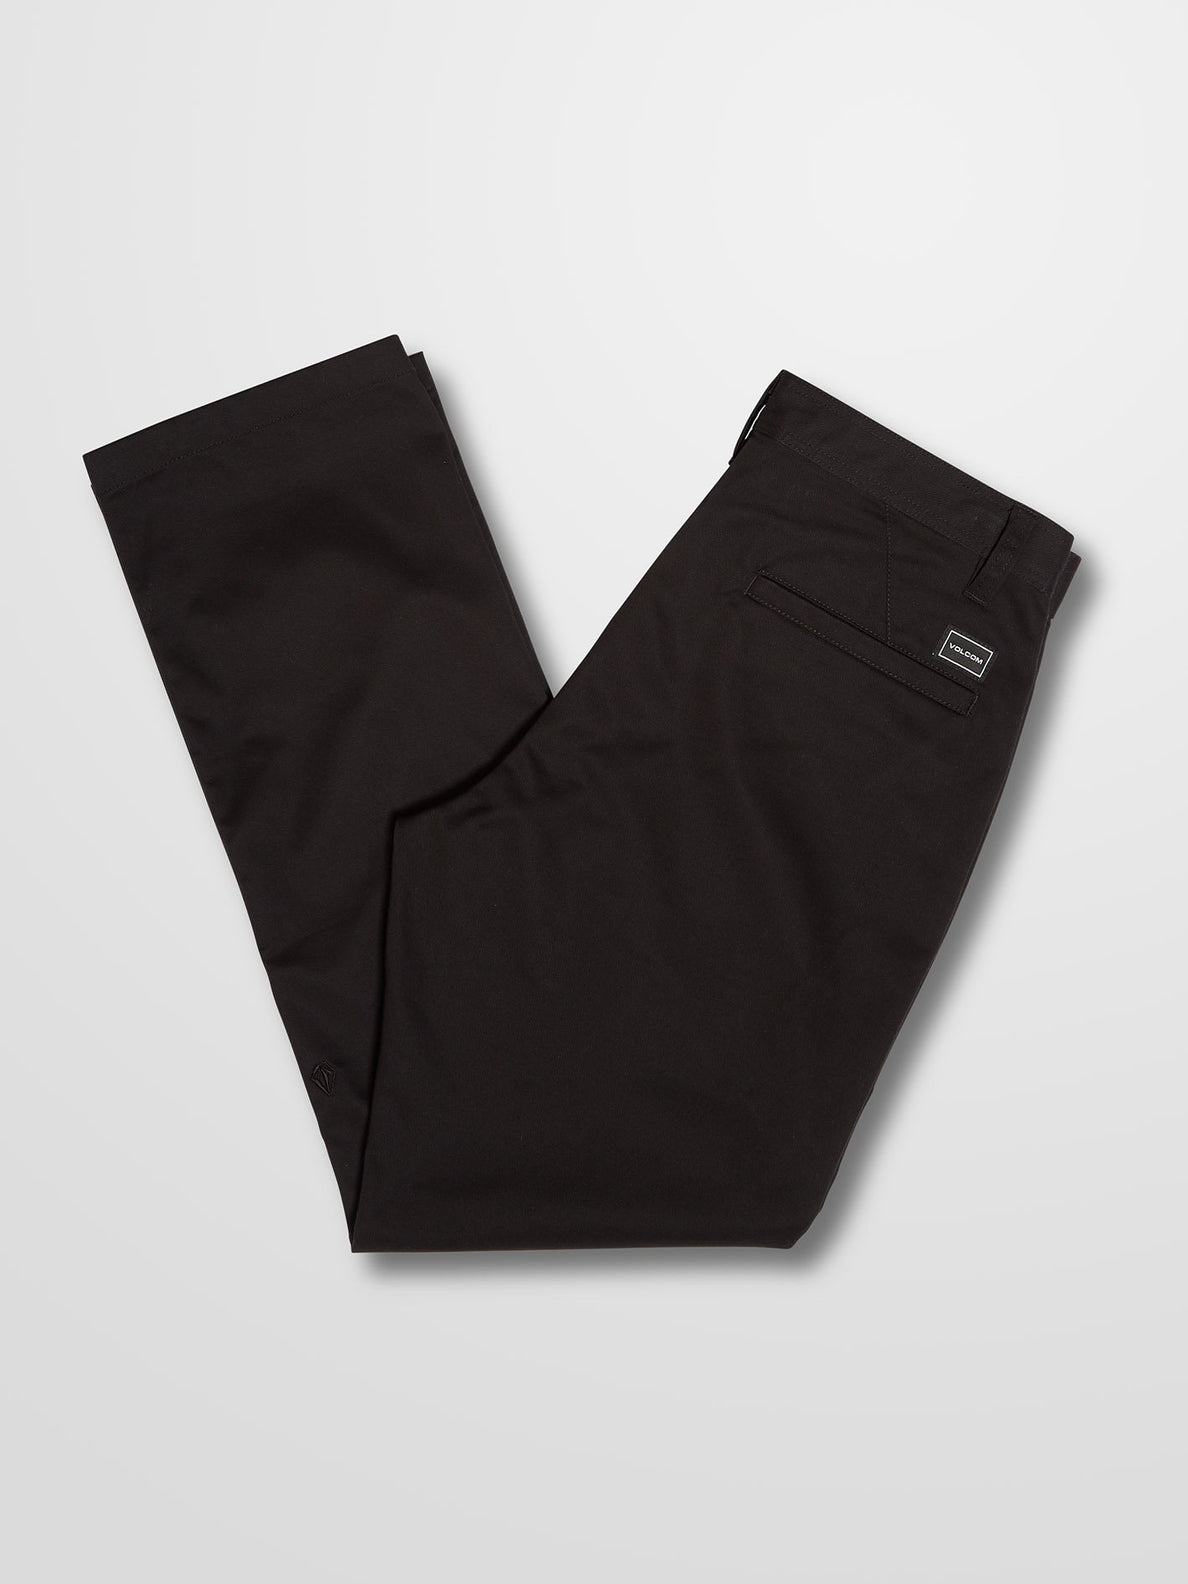 Substance Chino Pant - Black (A1112104_BLK) [2]